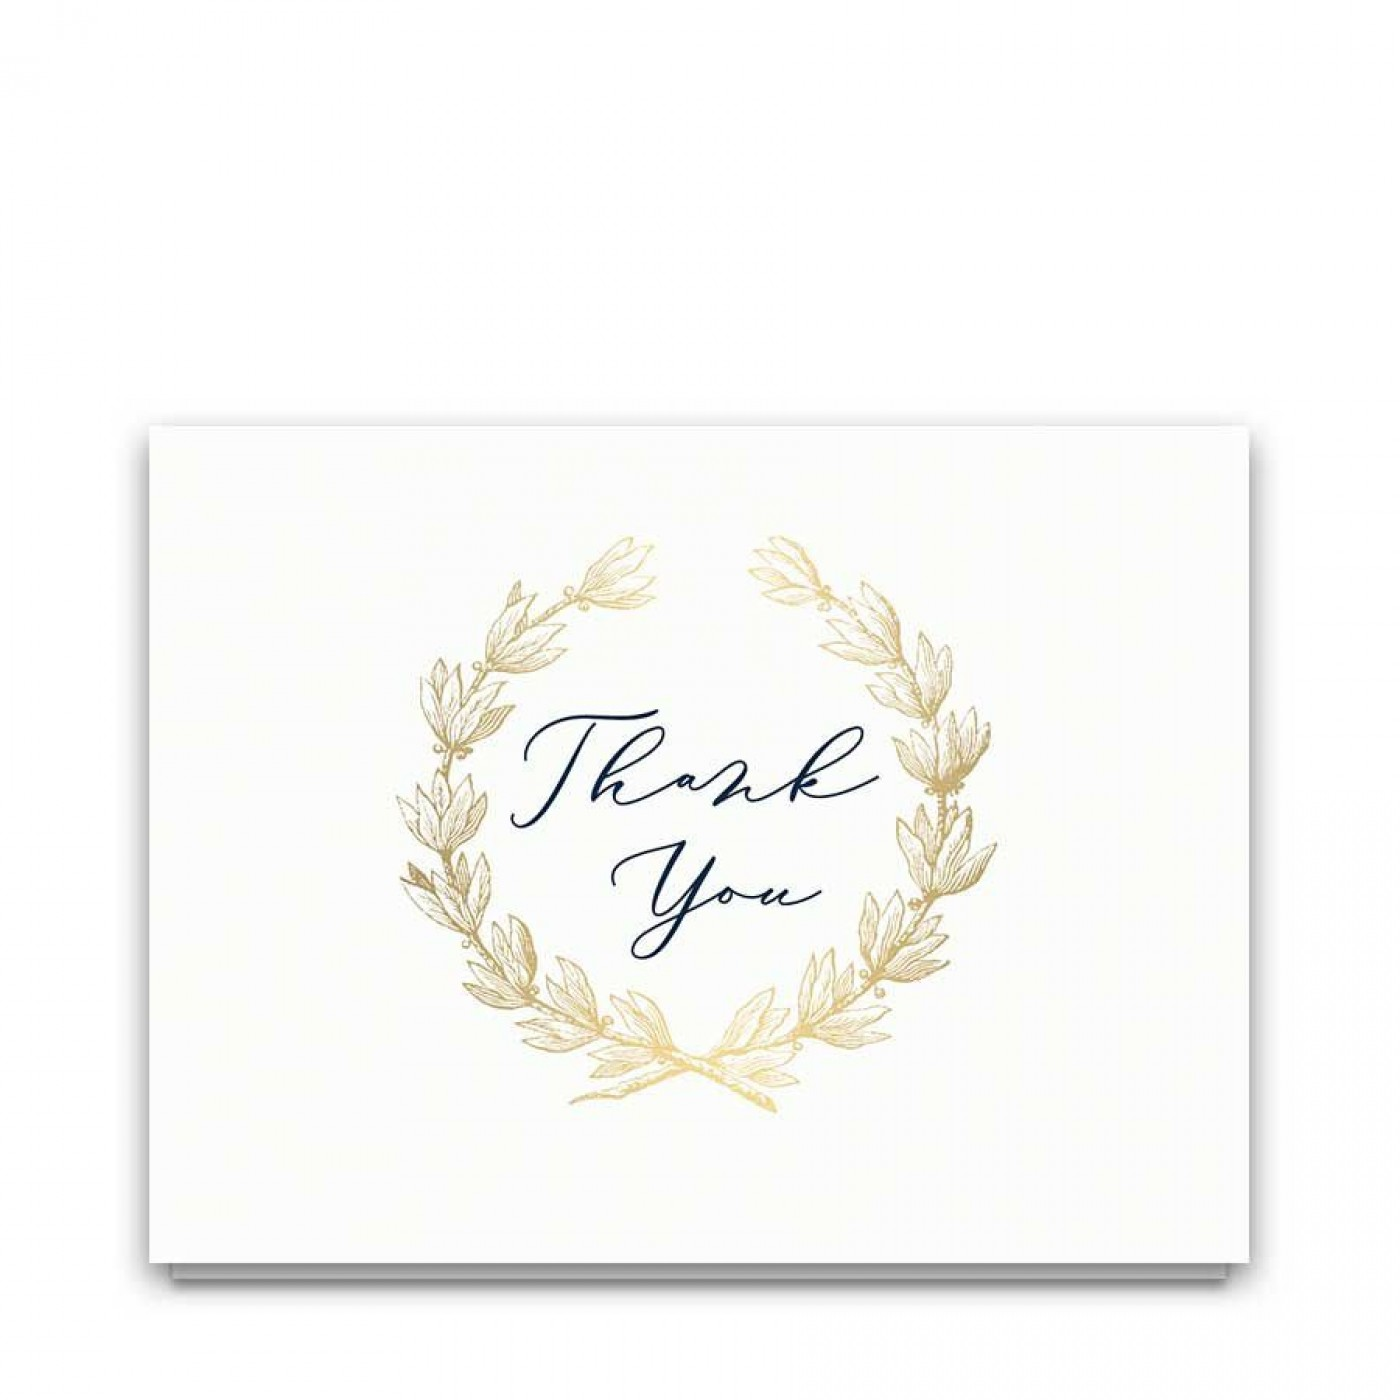 009 Stupendou Thank You Card Template Inspiration  Wedding Busines Word Free1400